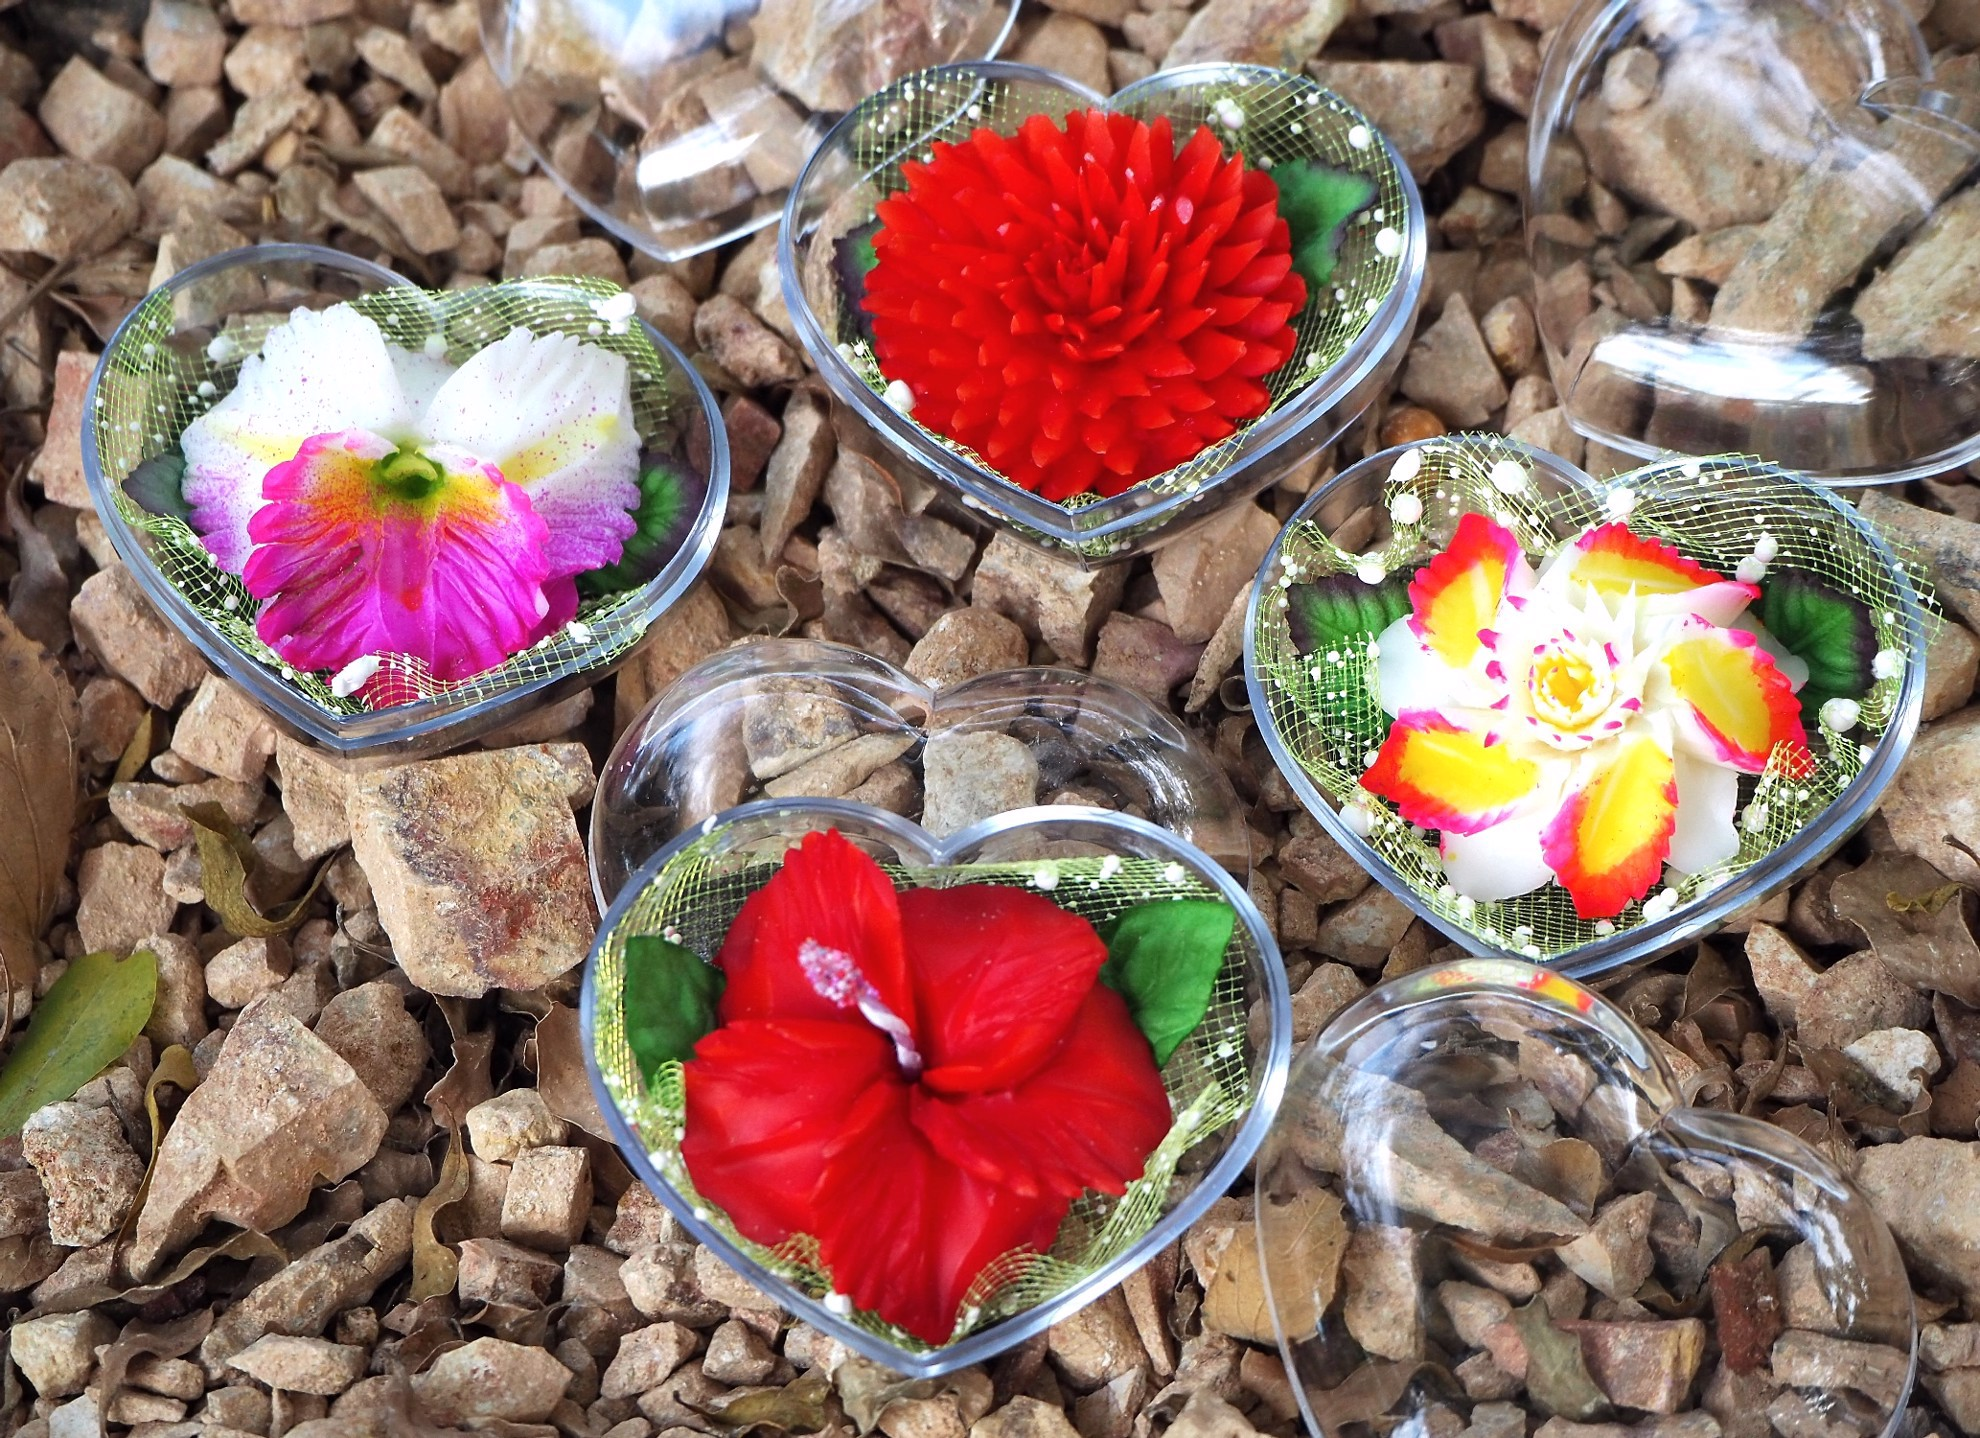 Picture of Thai Exotic Flower Decorative Soaps (4) Hand Carved, Jasmine Aroma Essential Oil, Scented Soap Carving